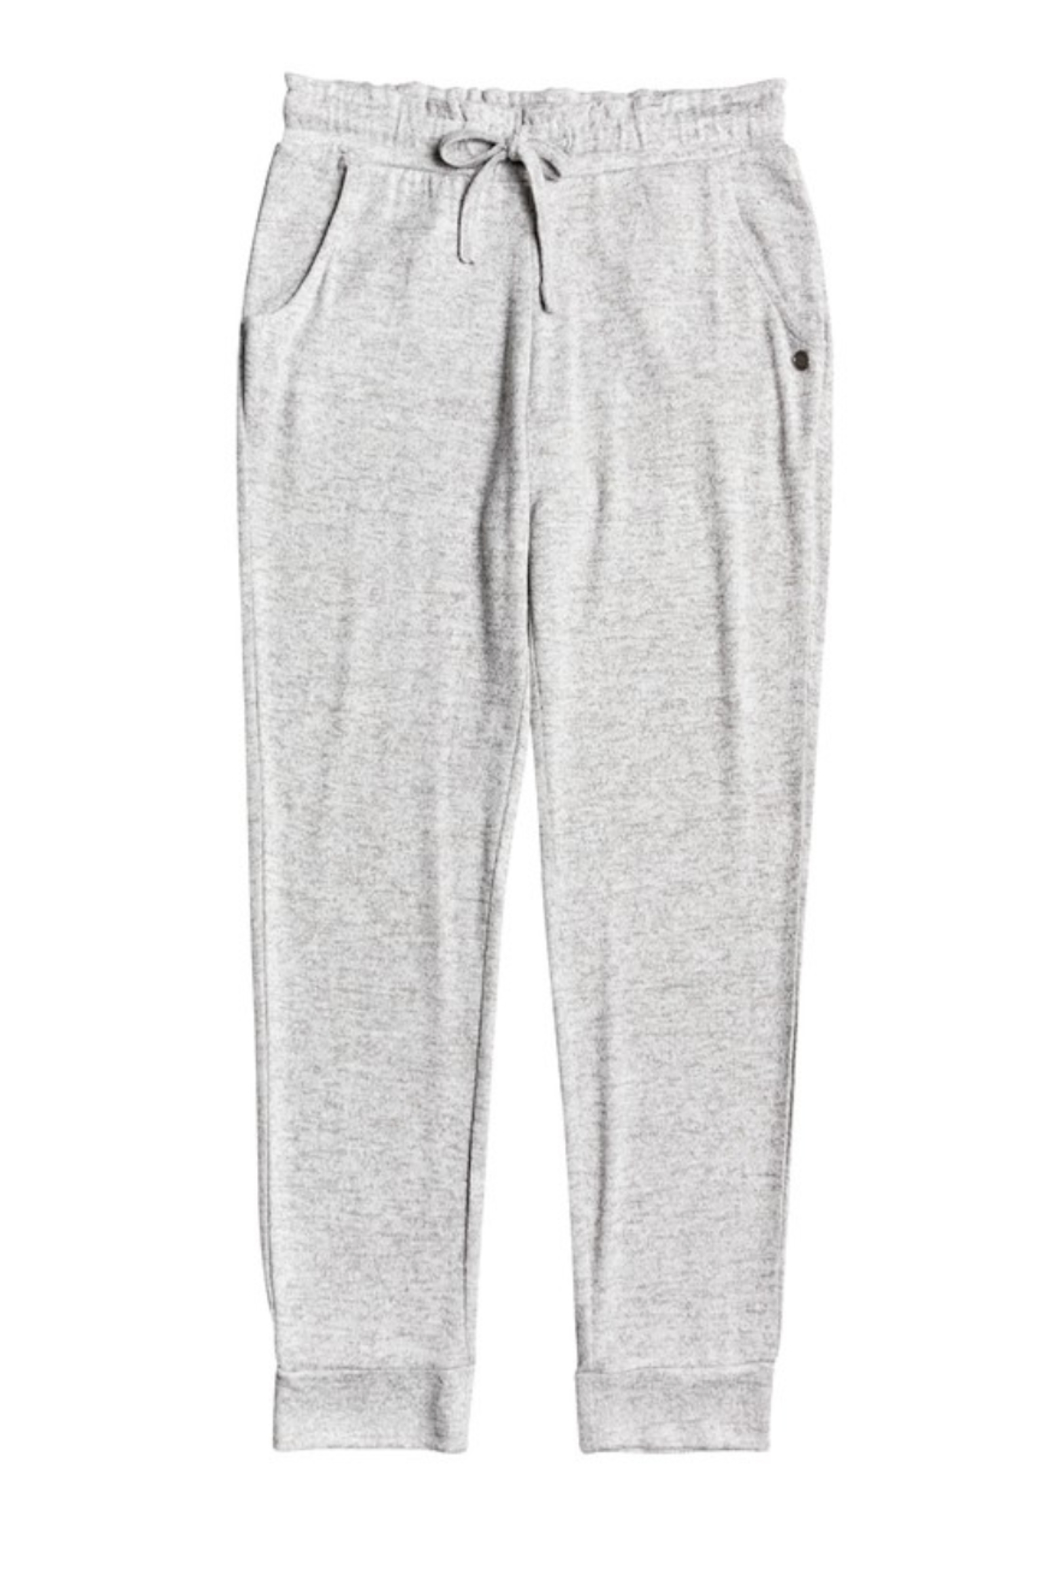 Roxy Secret Song Super Soft Joggers - Main Image